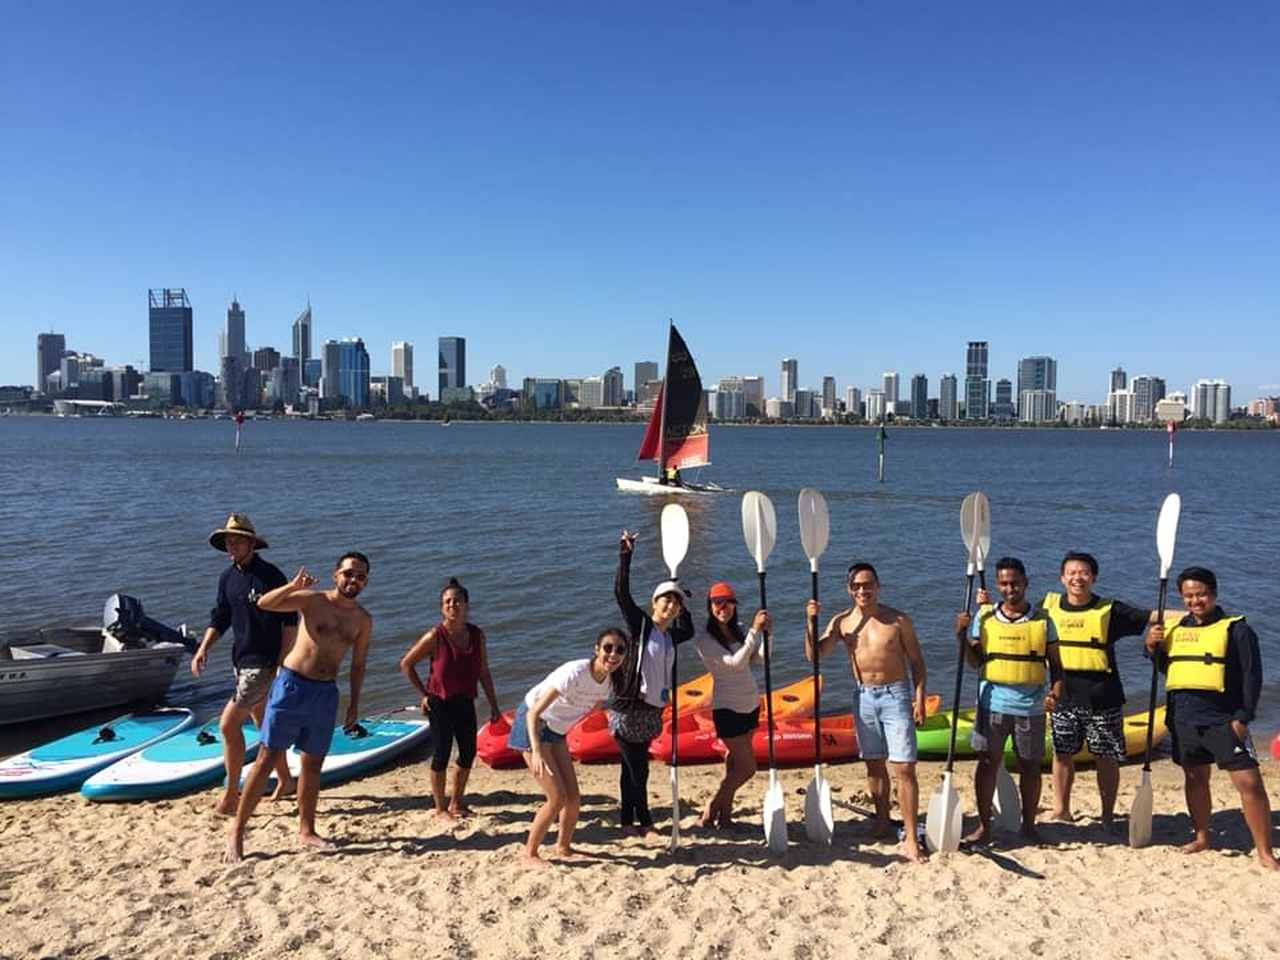 Water transportation, Recreation, Vehicle, Paddle, Rowing, Boating, Surface water sports, Physical fitness, Tourism, Sports, Beach, Fun, Water sport, Boat, Surfboat, City, Watercraft rowing, Watercraft, Crew, Vacation, Water transportation, Rowing, Boat